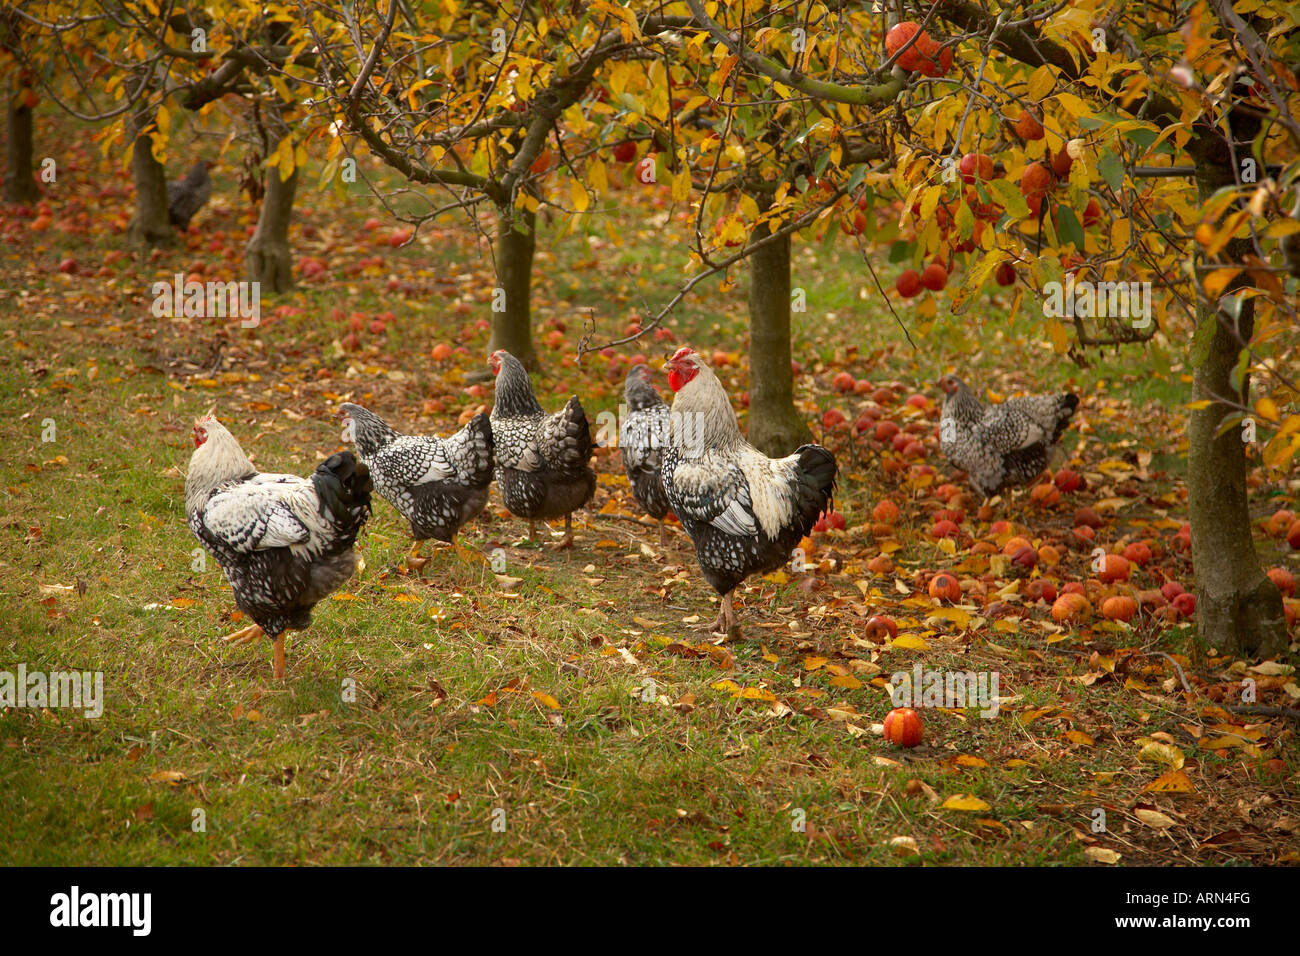 Red Rooster Coffee Garden Valley Biodynamic Stock Photos And Biodynamic Stock Images Alamy